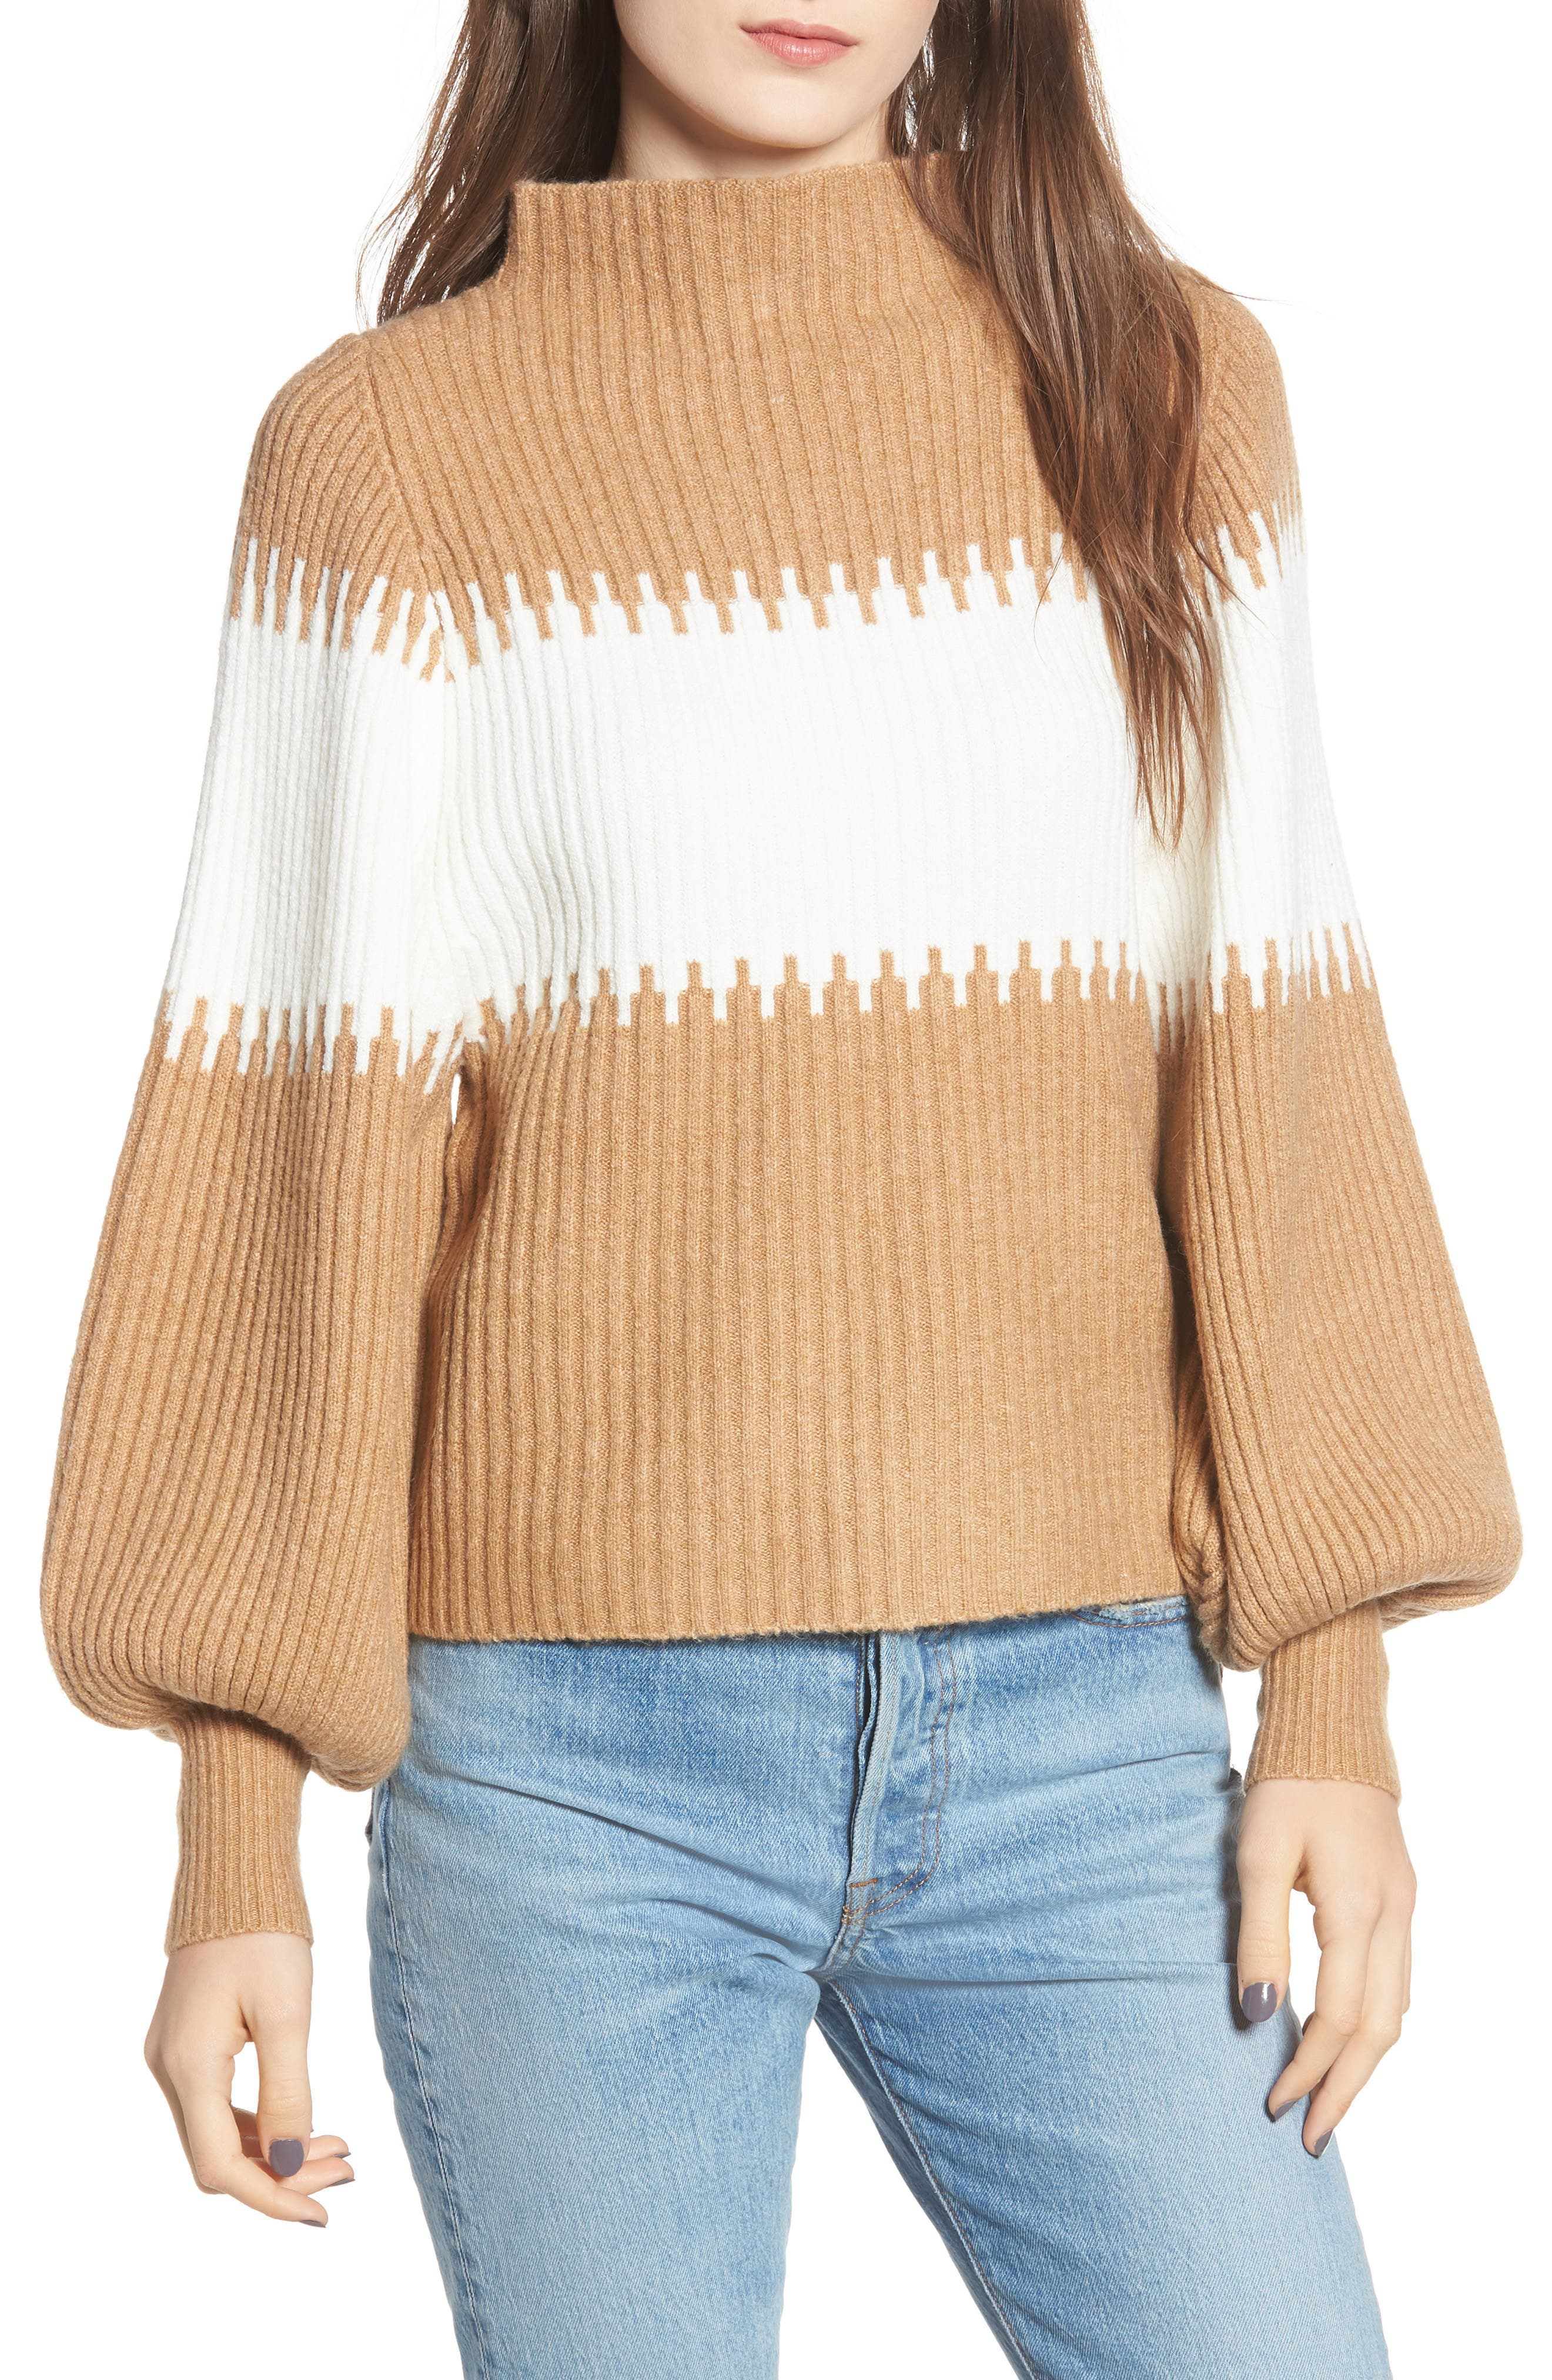 Sofia Funnel Neck Sweater,                         Main,                         color, CAMEL/ WHITE